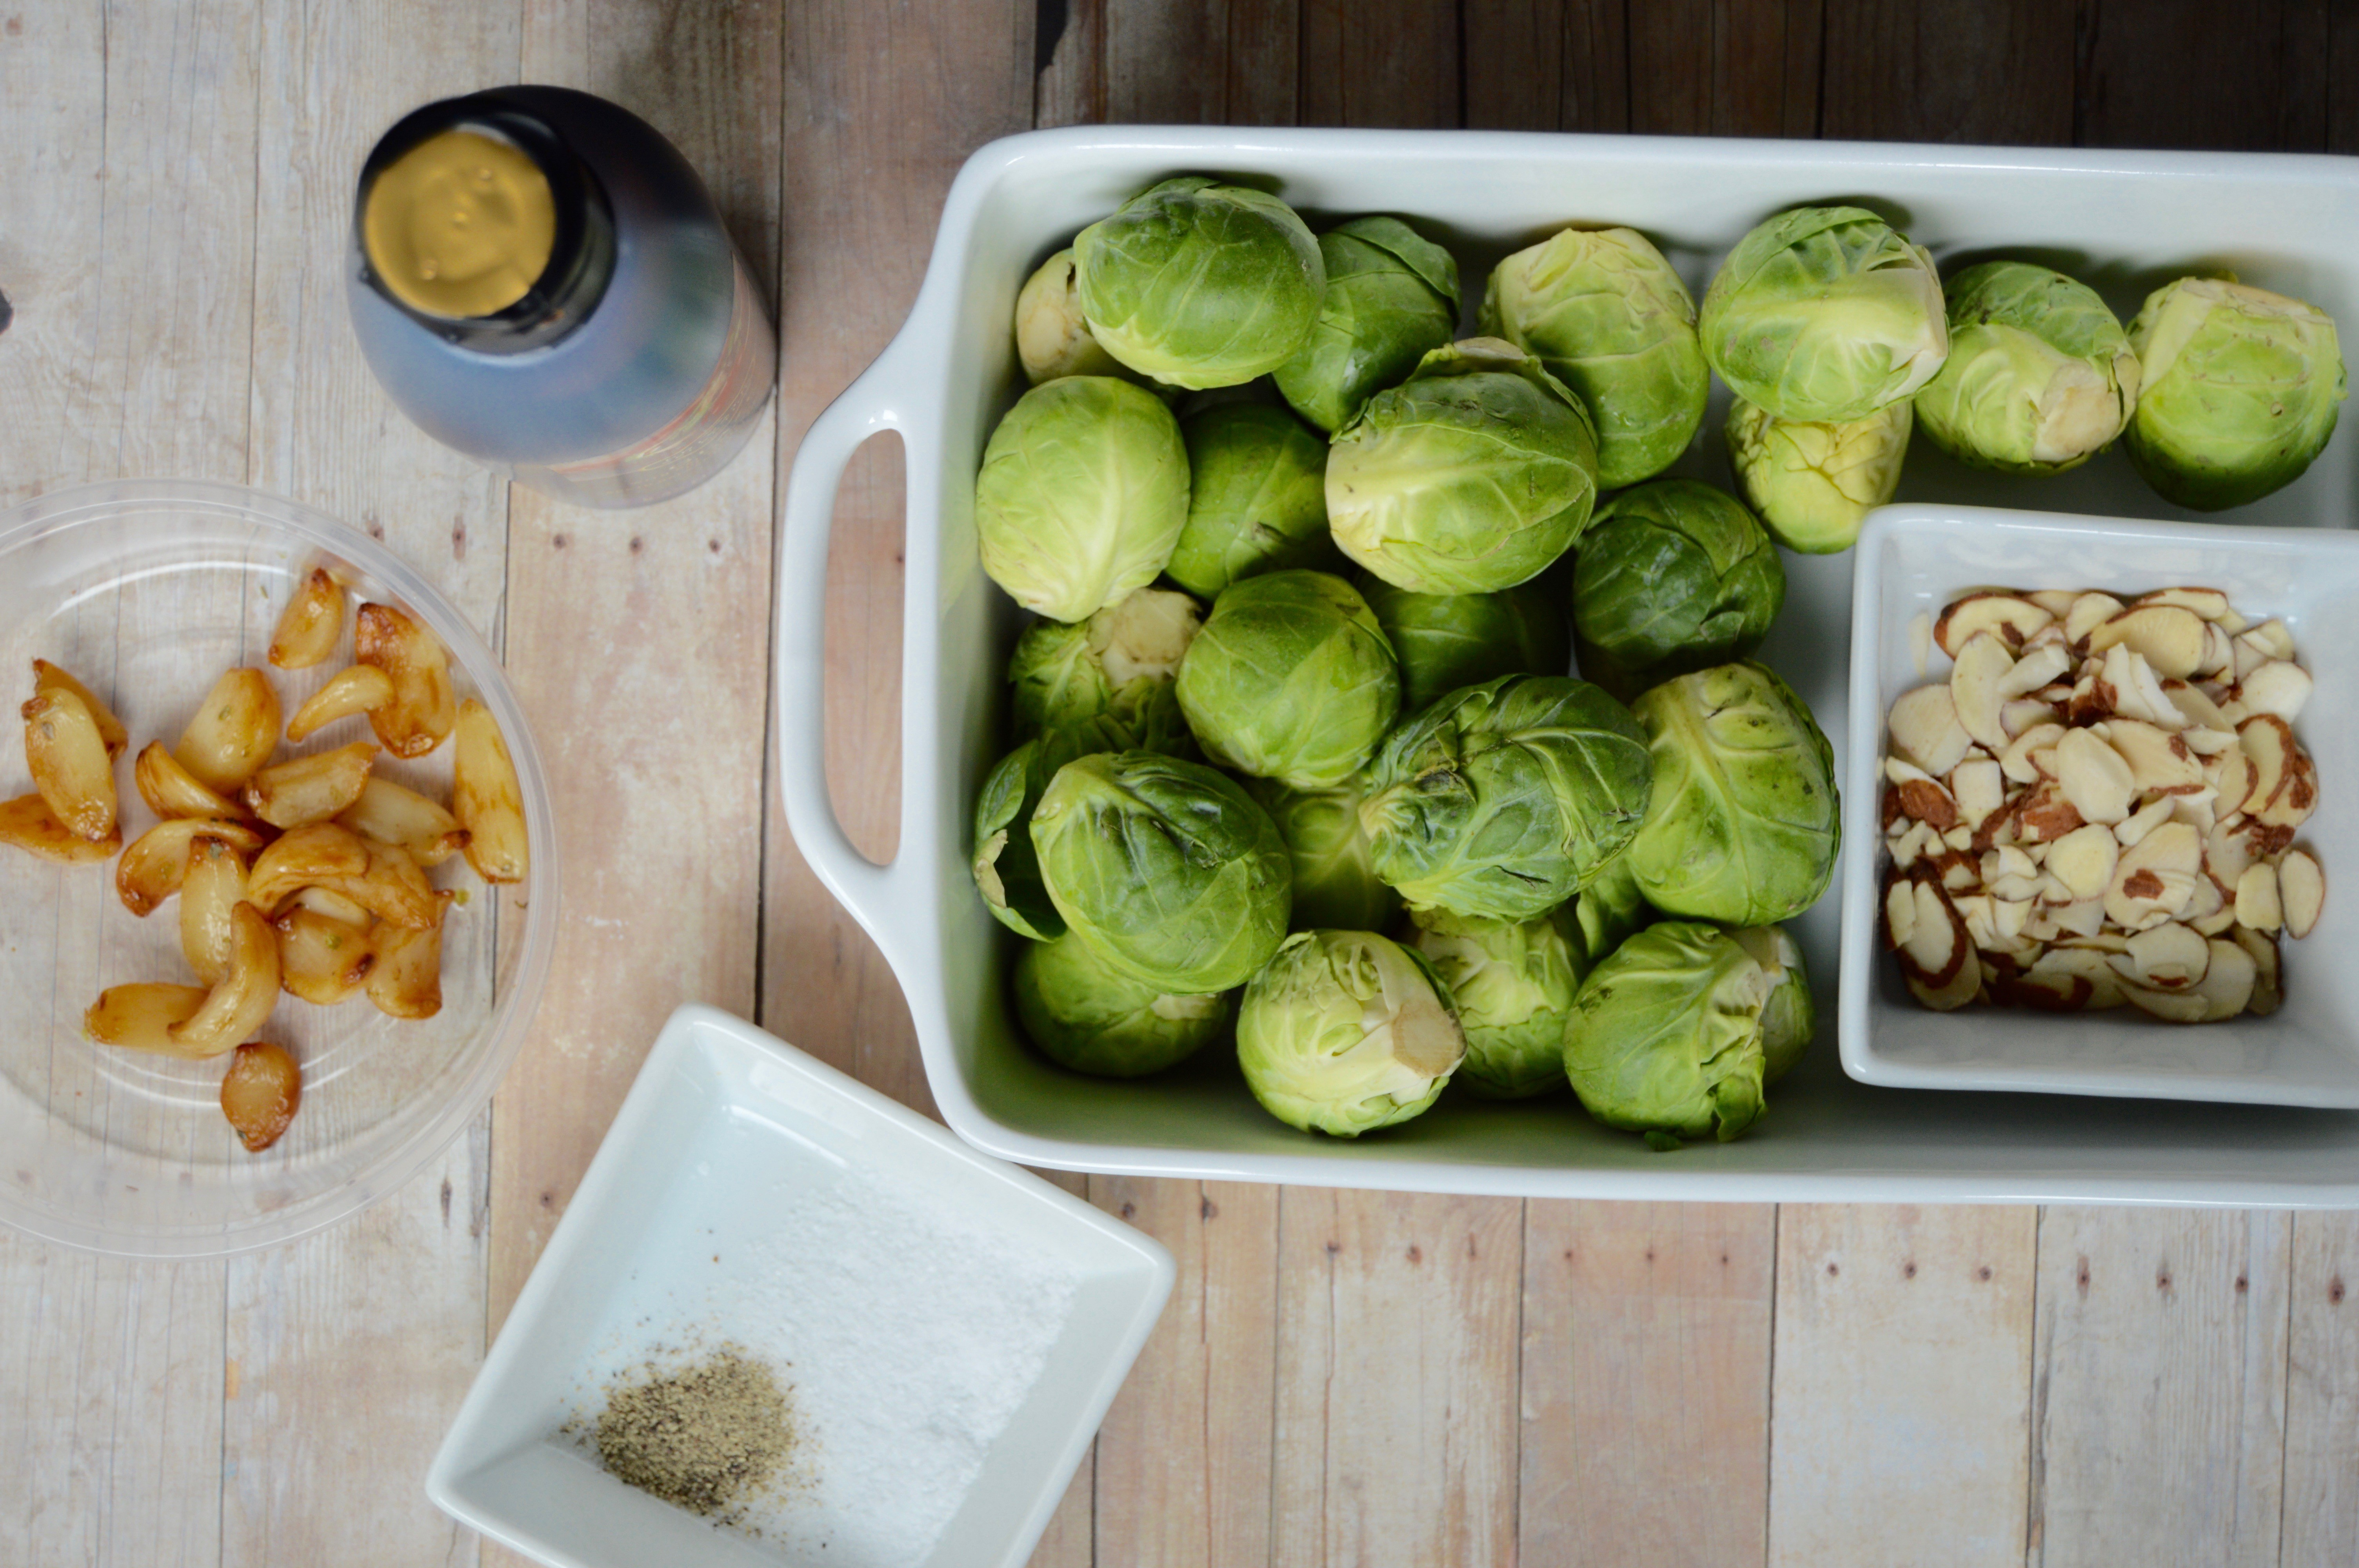 Brussels sprouts recipe for a tasty, savory dish. Healthy vegetable side dish with balsamic vinegar glaze. Ingredients + directions for pan frying.